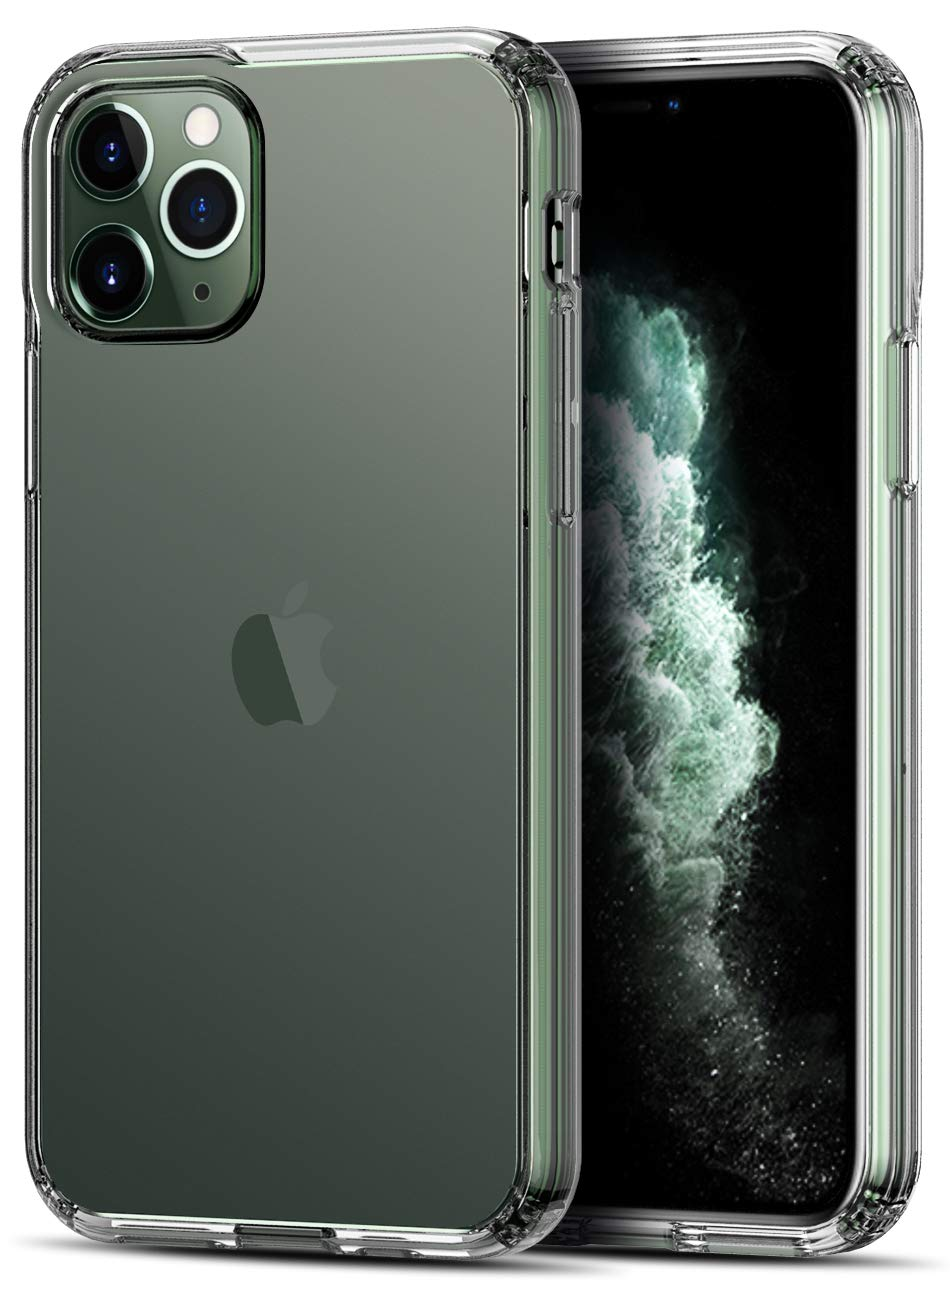 CASEVASN iPhone 11 Pro Case, [Shock-Absorption] Air Hybrid Slim Thin Shockproof Anti-Drop Crystal TPU Bumper + [Clear] Hard Back Protective Case Cover for iPhone 11 Pro 5.8'' (Clear)